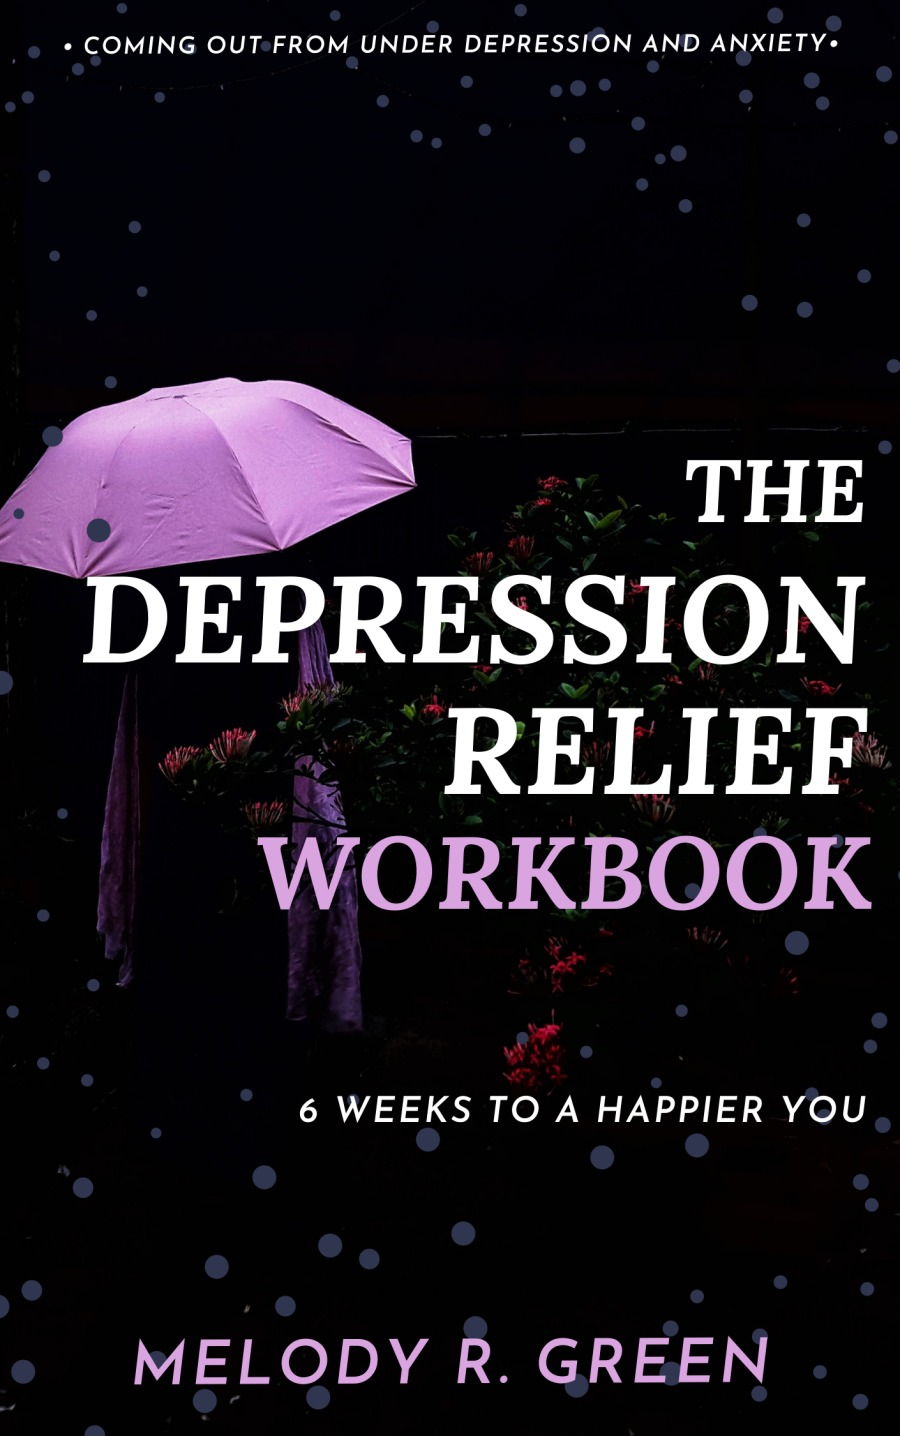 Why I developed The Depression Relief Workbook+ COMING OUT-FROM UNDER DEPRESSION AND ANXIETY.  fe G0: EPRESSION  3A) WORKBOOK      6 WEEKS TO A HAPPIER YOU  MELODY R. GREEN